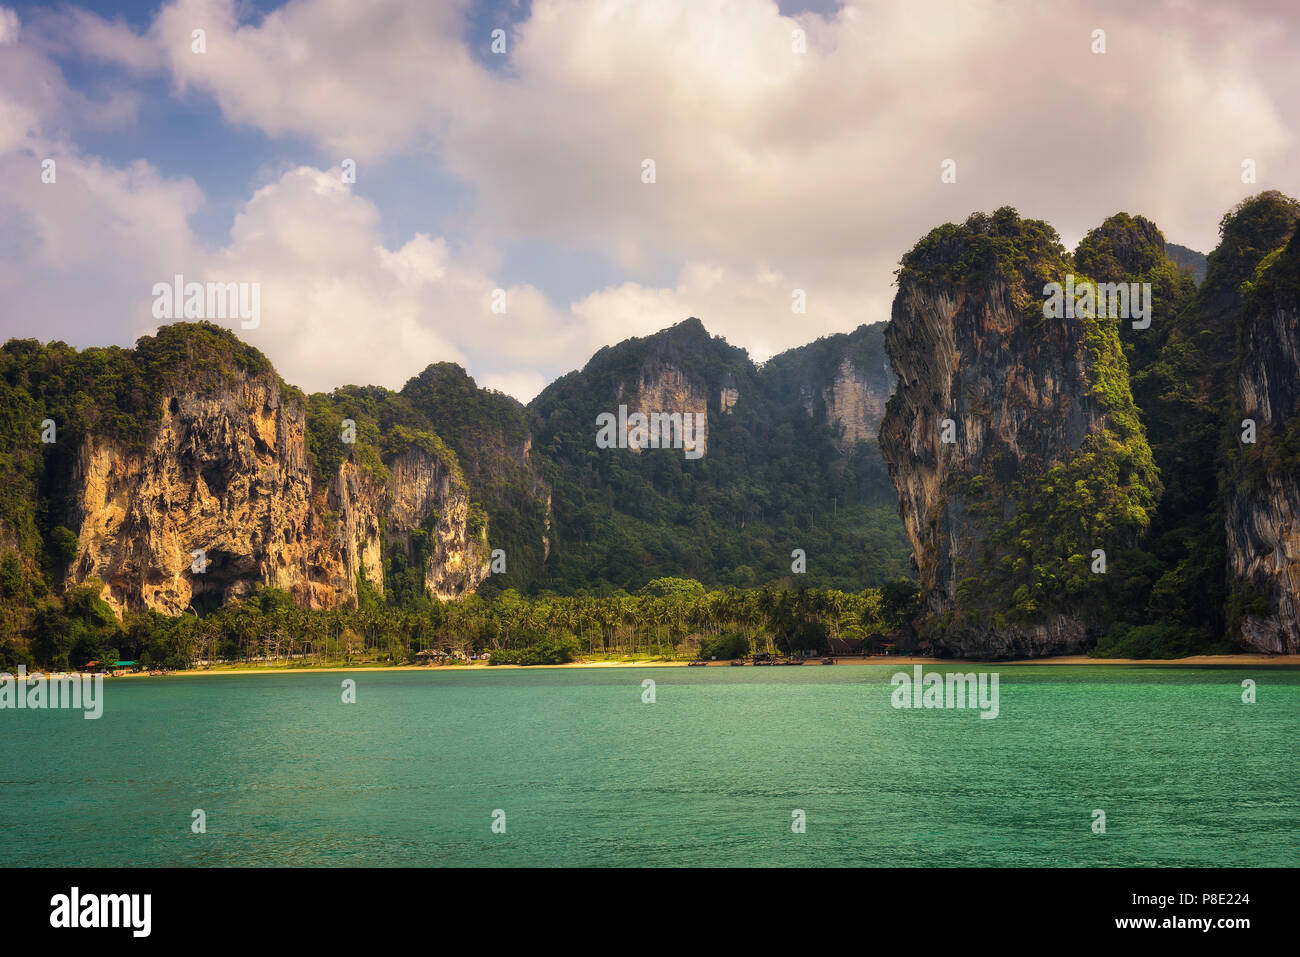 Beach on Koh Phi Phi island in Thailand - Stock Image